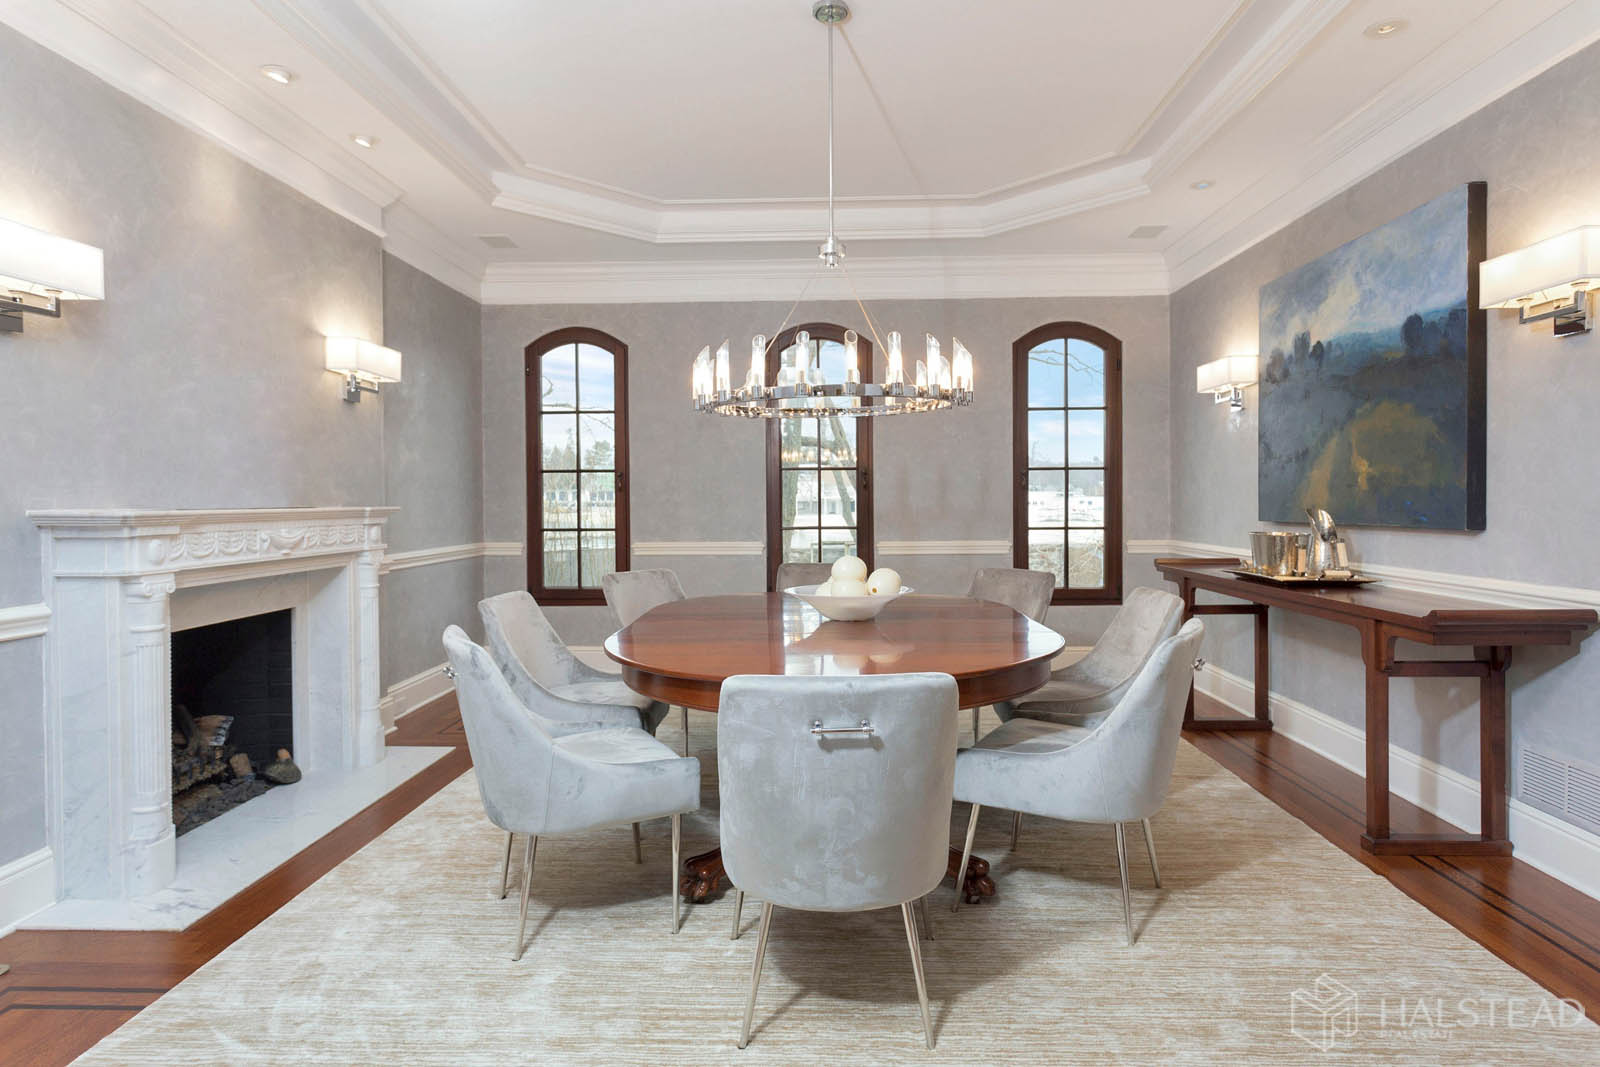 25 Butlers Island Road, Darien, Connecticut, 06820, $10,900,000, Property For Sale, Halstead Real Estate, Photo 11